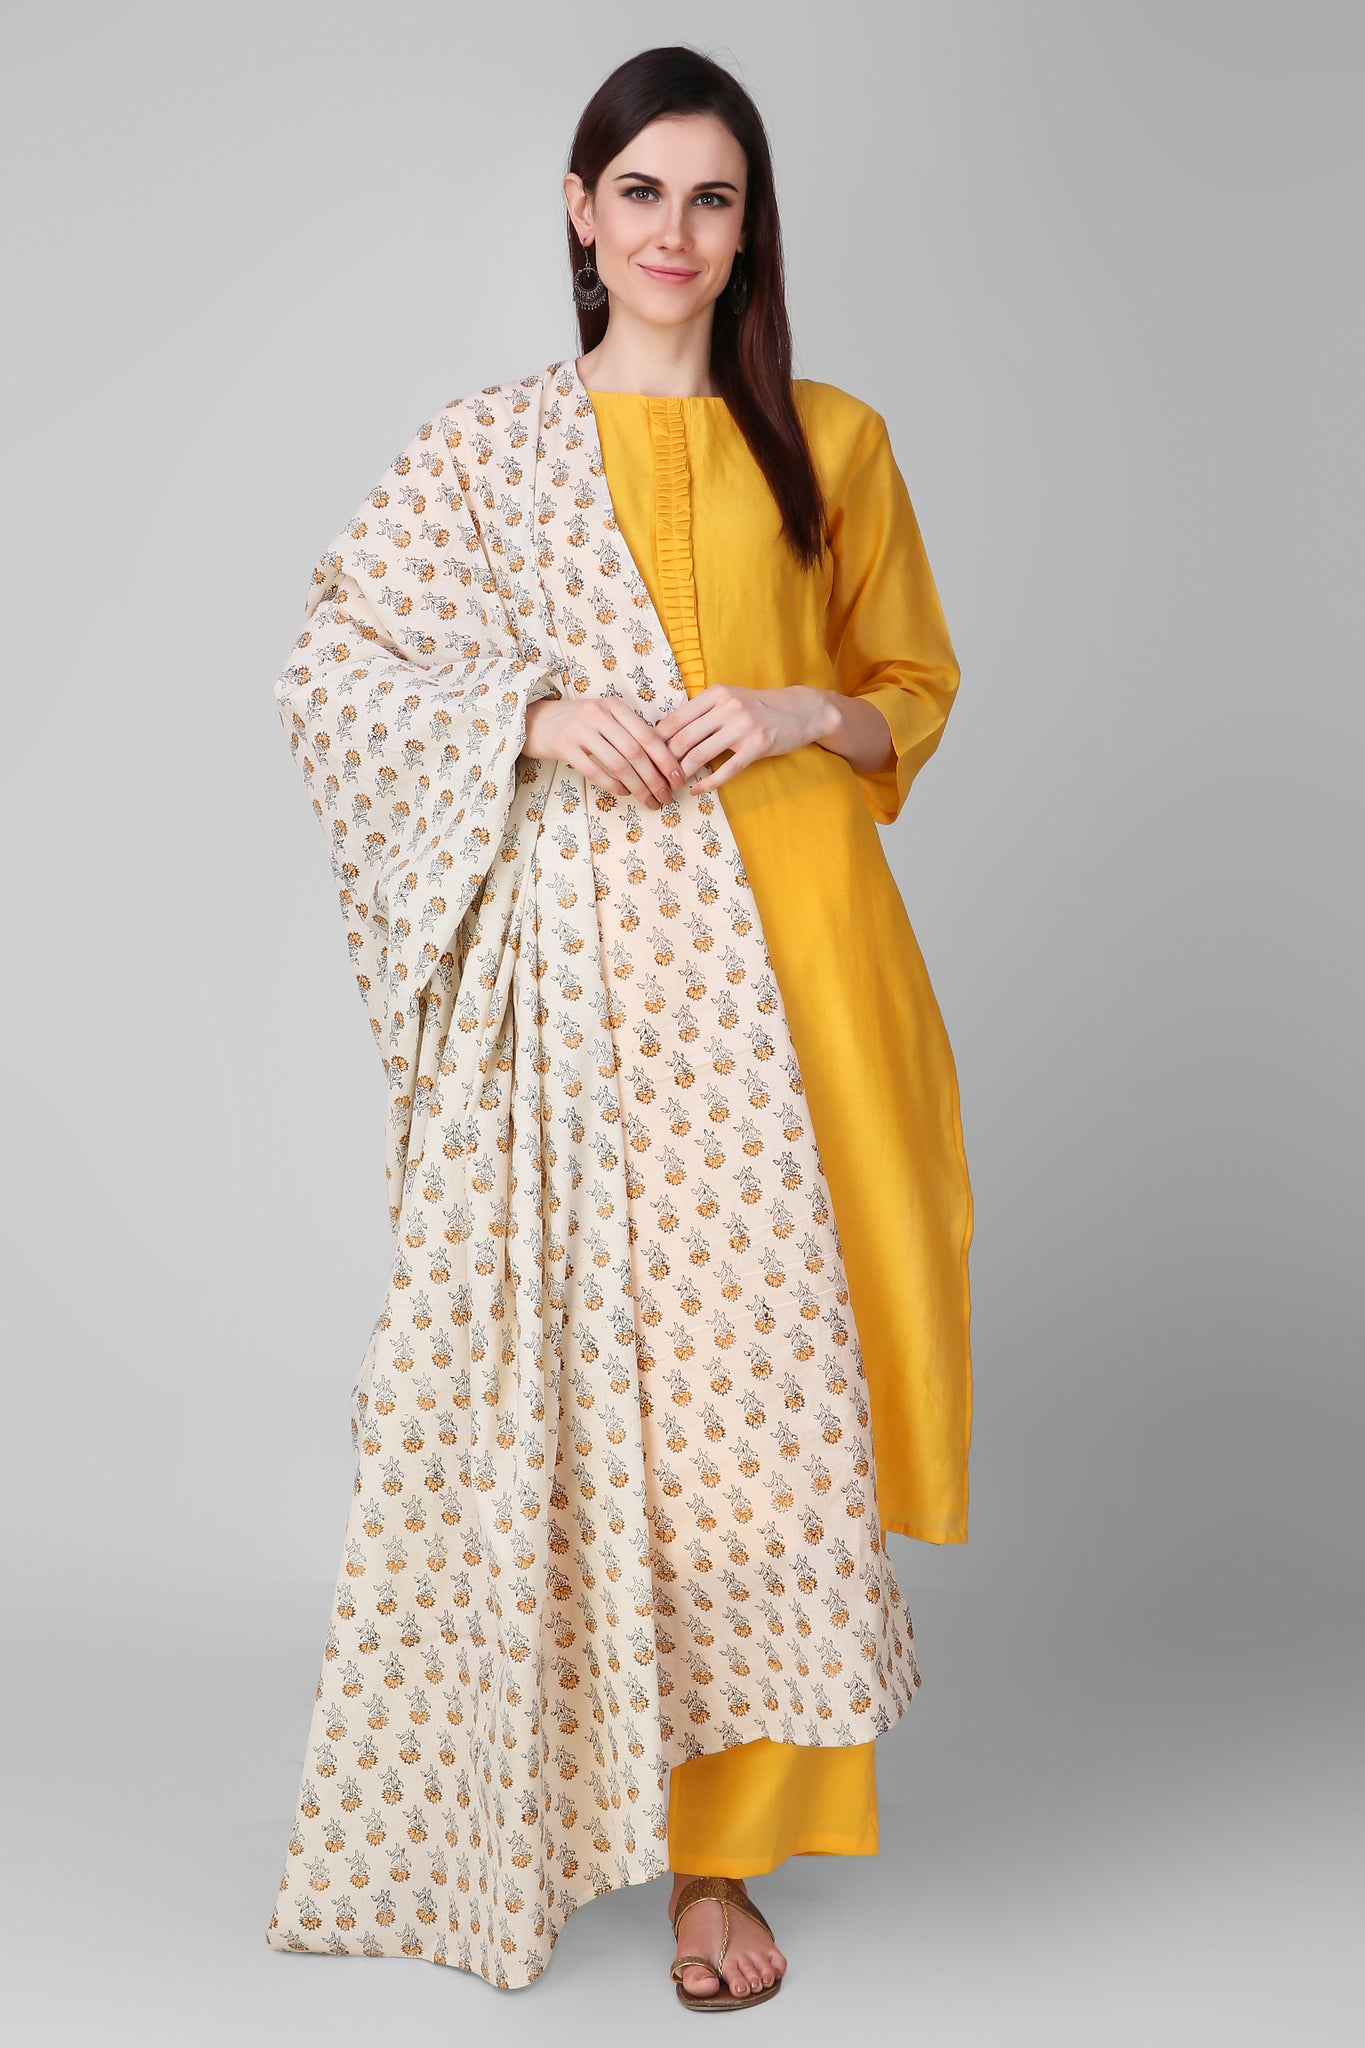 Yellow-Cream Cotton Hand Block Printed Dupatta - label shreya gupta